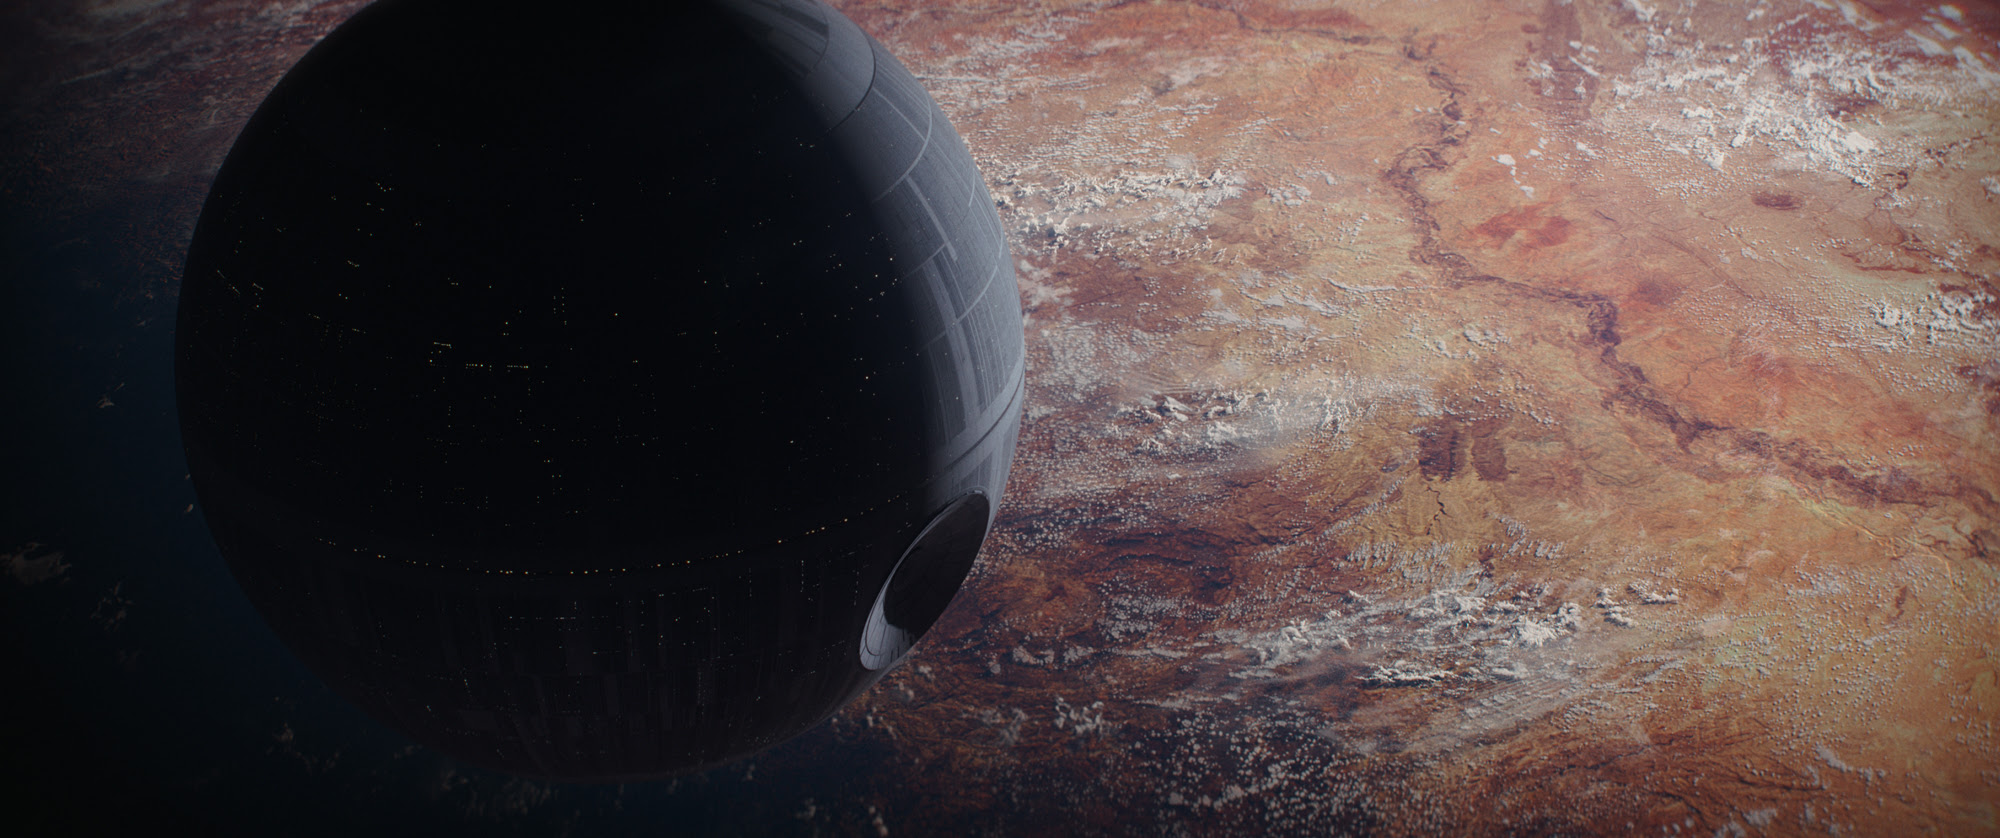 http://www.space.com/images/i/000/060/822/original/death-star-rogue-one.jpg?interpolation=lanczos-none&fit=inside%7C660:*